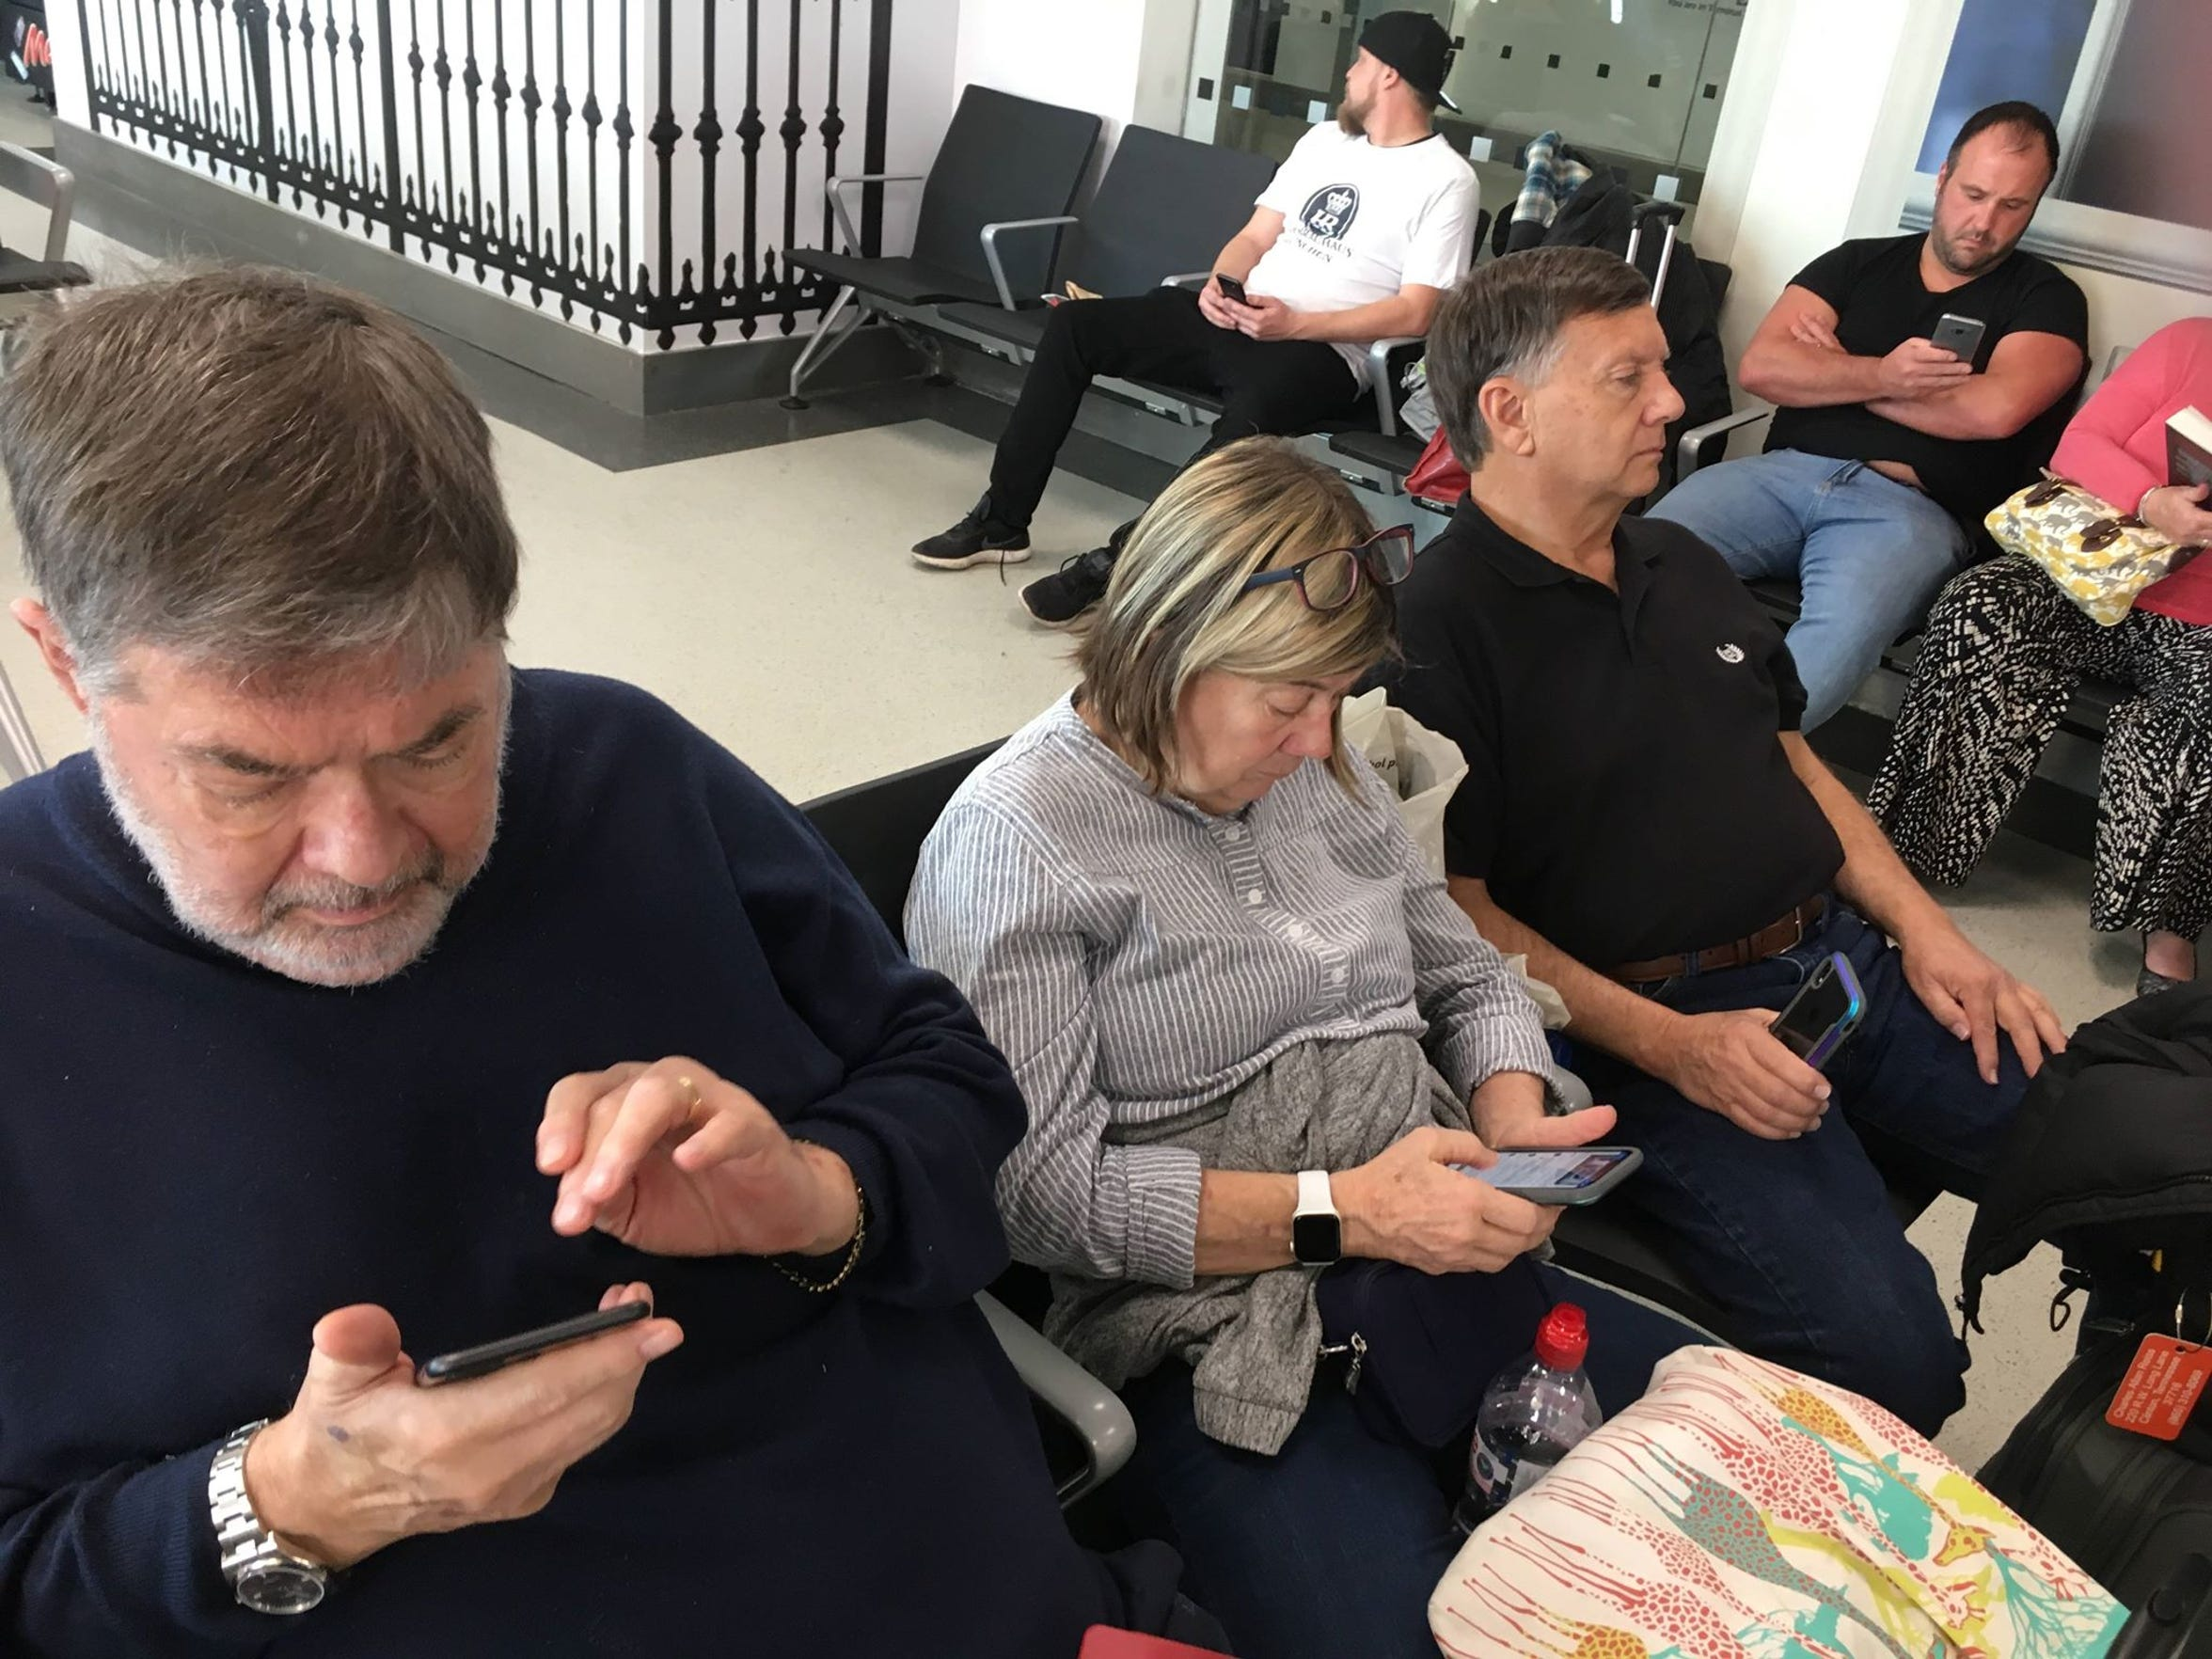 From left, Allan Reiss, Laura Wolfe and Richard Wolfe wait for a flight back to the United States from London's Heathrow Airport. The three were on board the Viking Sky cruise ship with Jamey Kennedy when engine failure stranded them in the middle of a storm.